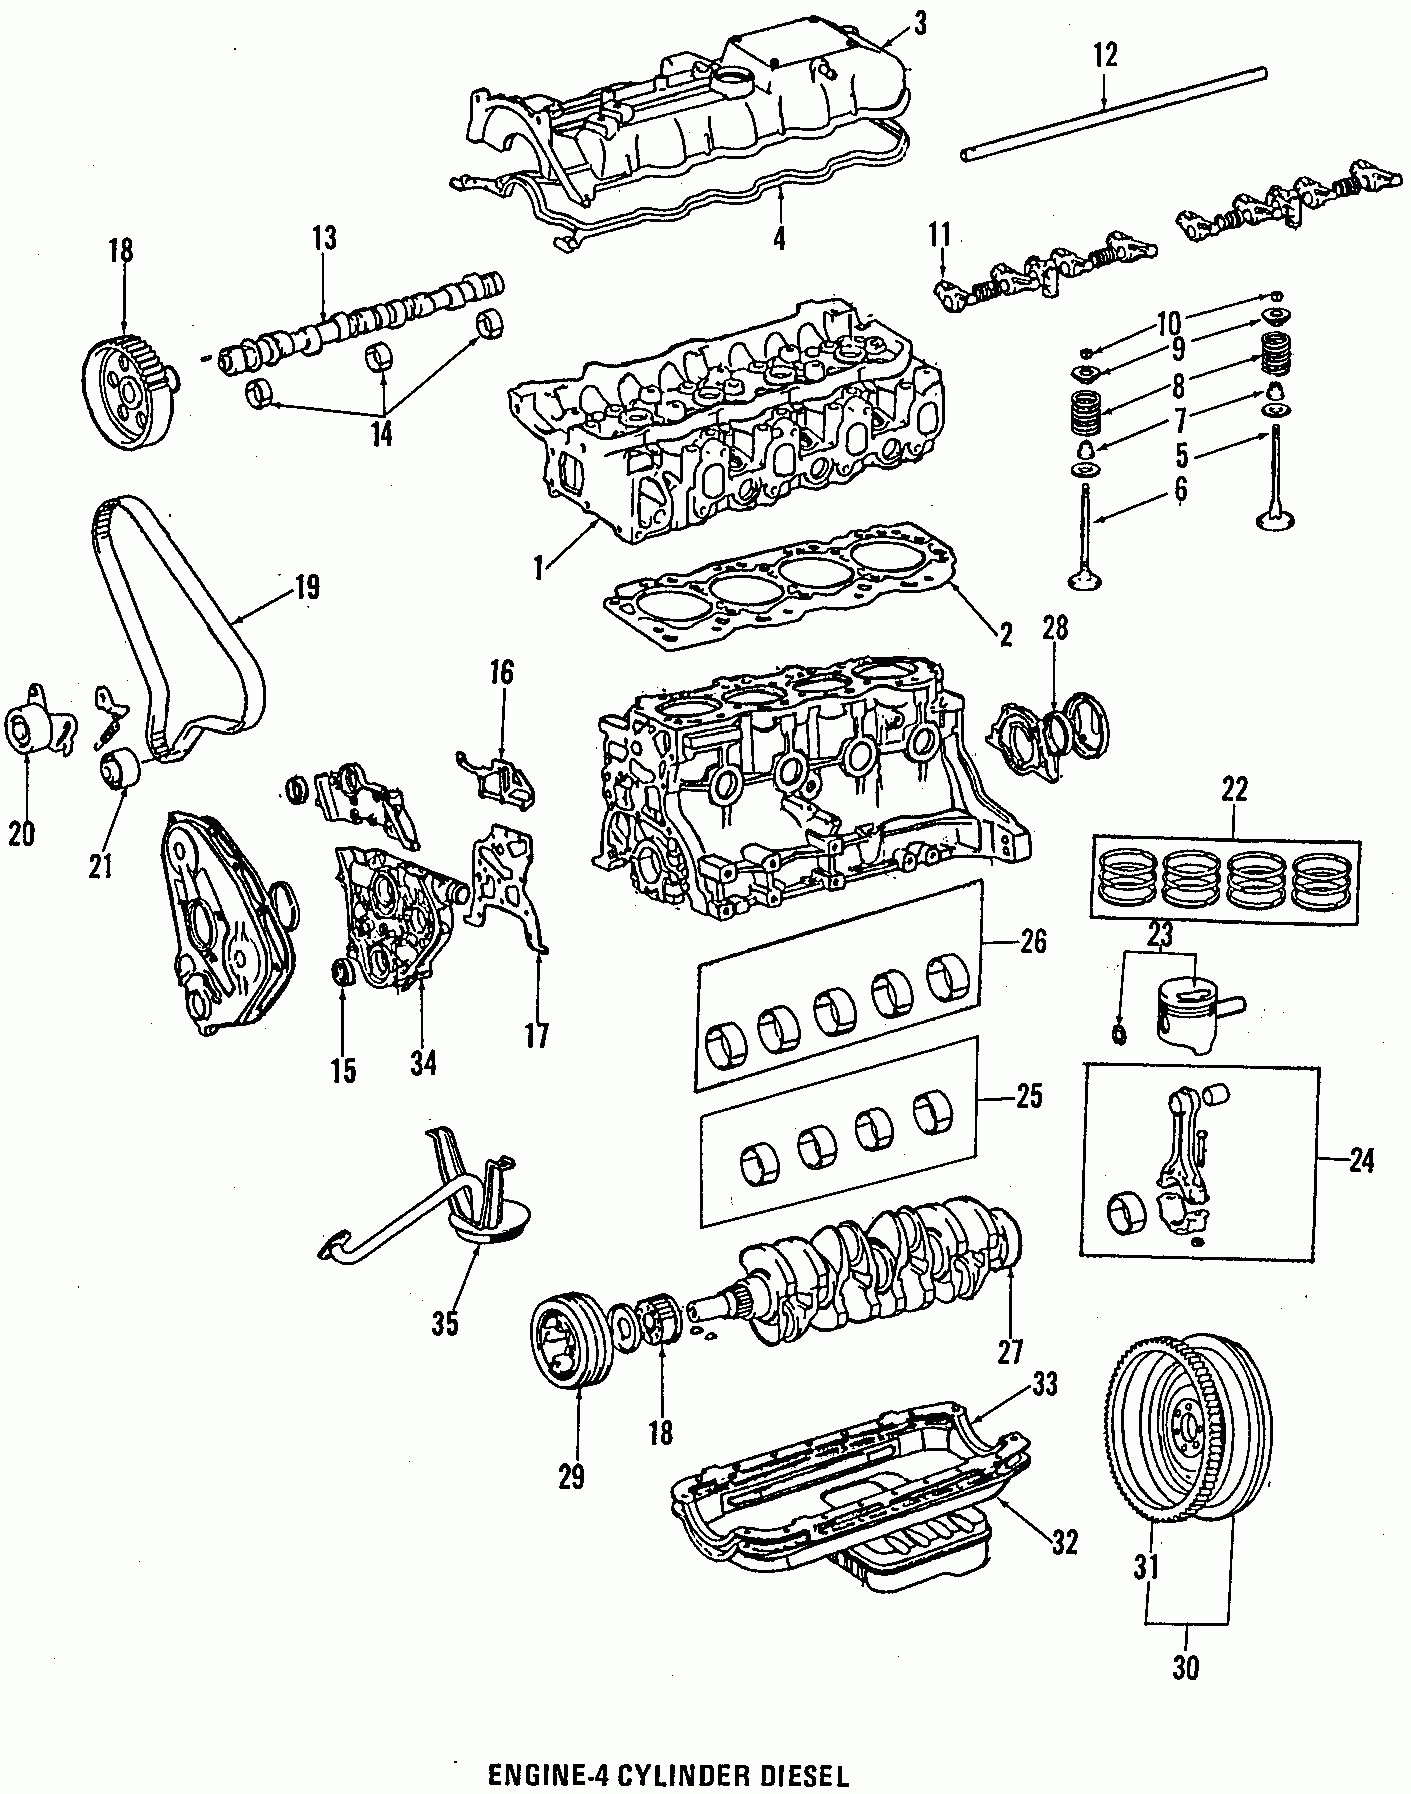 A Diagram Of 2005 Toyota Sequoia Engine Nissan 300zx